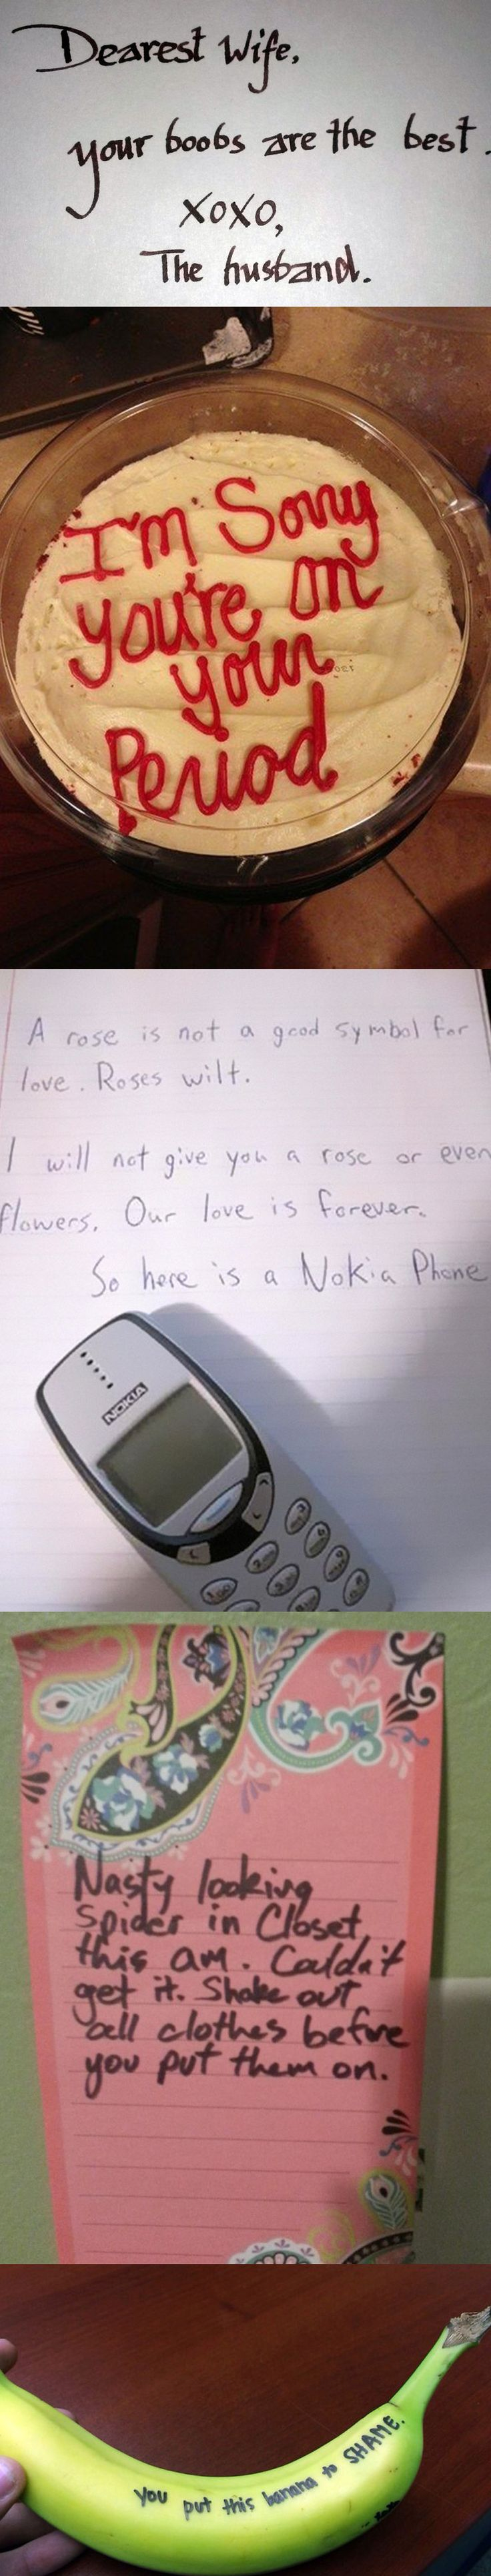 23 Love Notes That Show What Marriage Is Really Like - #1 #2 are totally my hubs, without a doubt!